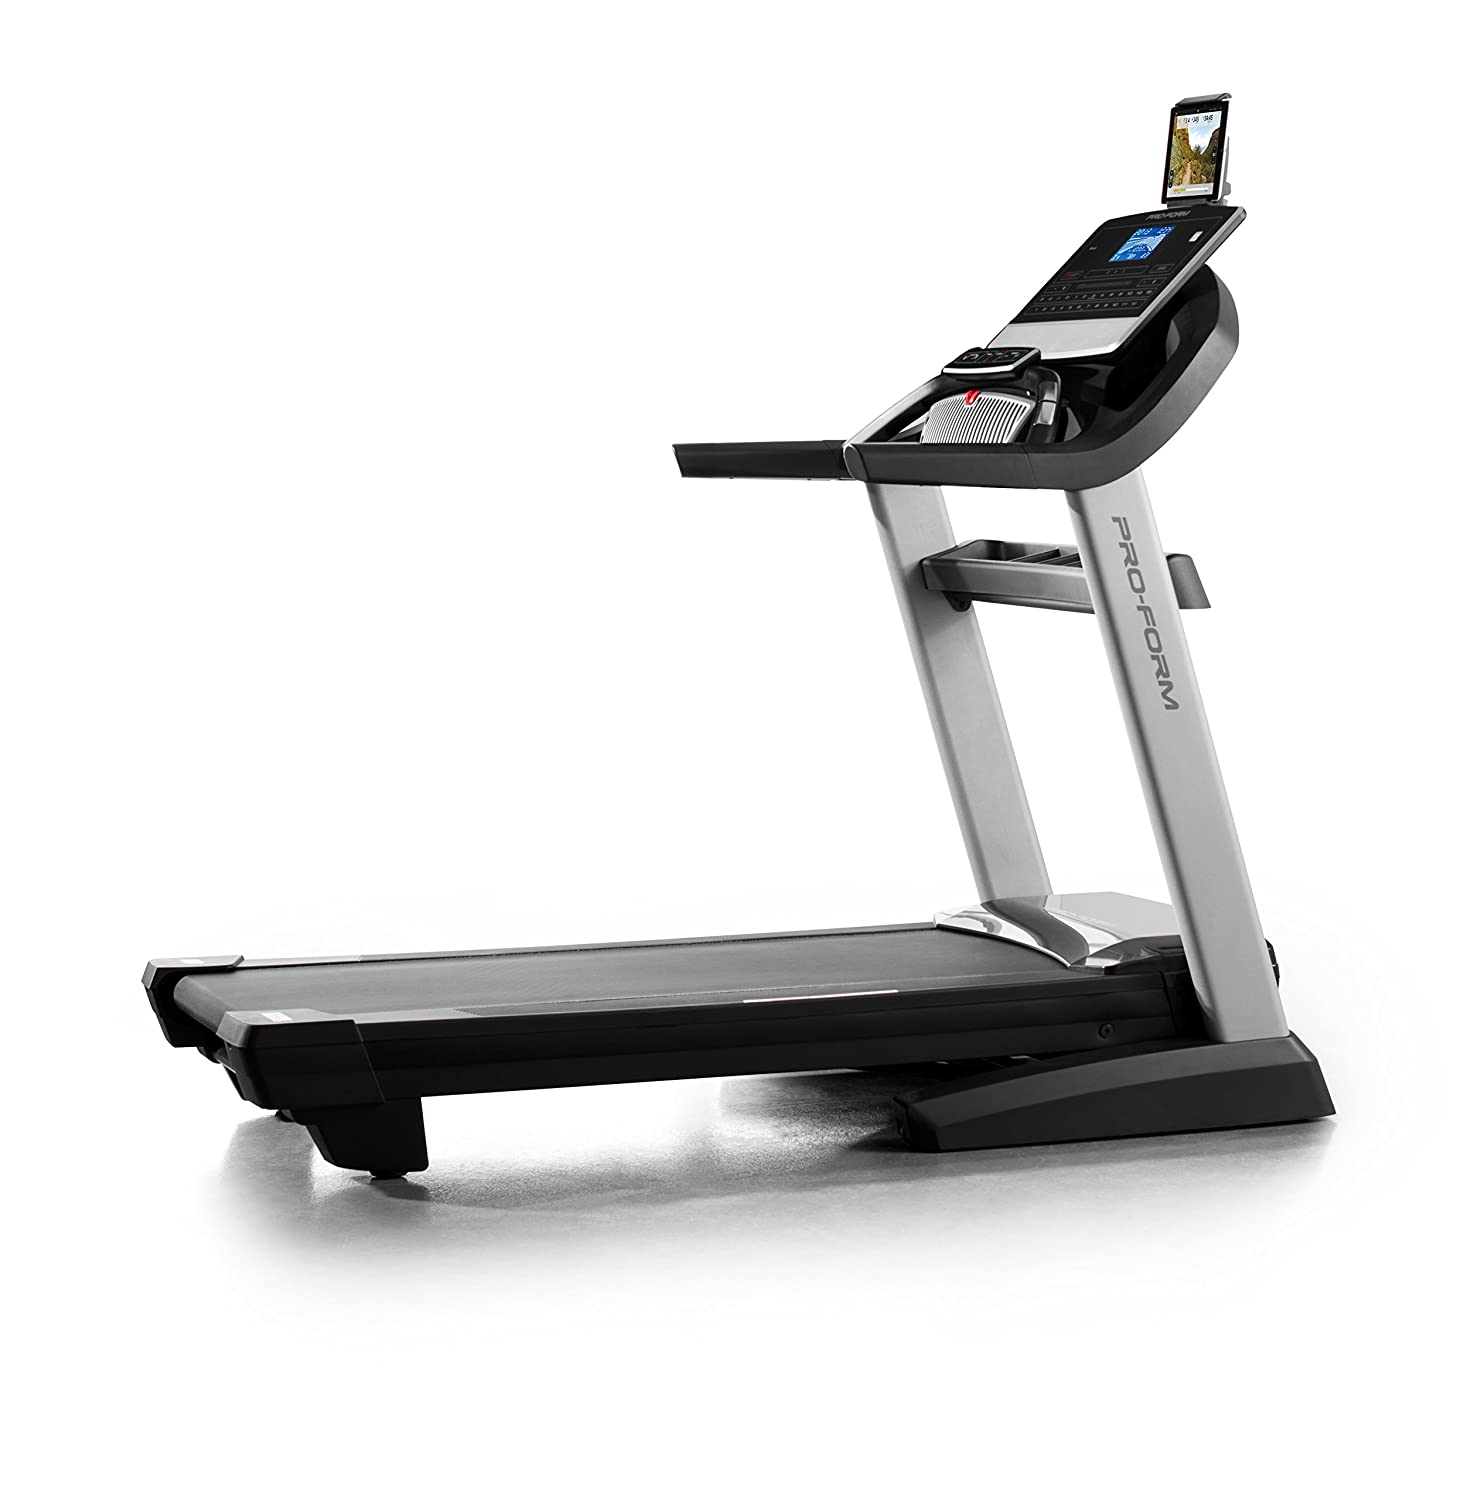 ProForm PFTL15116 PRO-5000 Treadmill – Second Strongest Motor